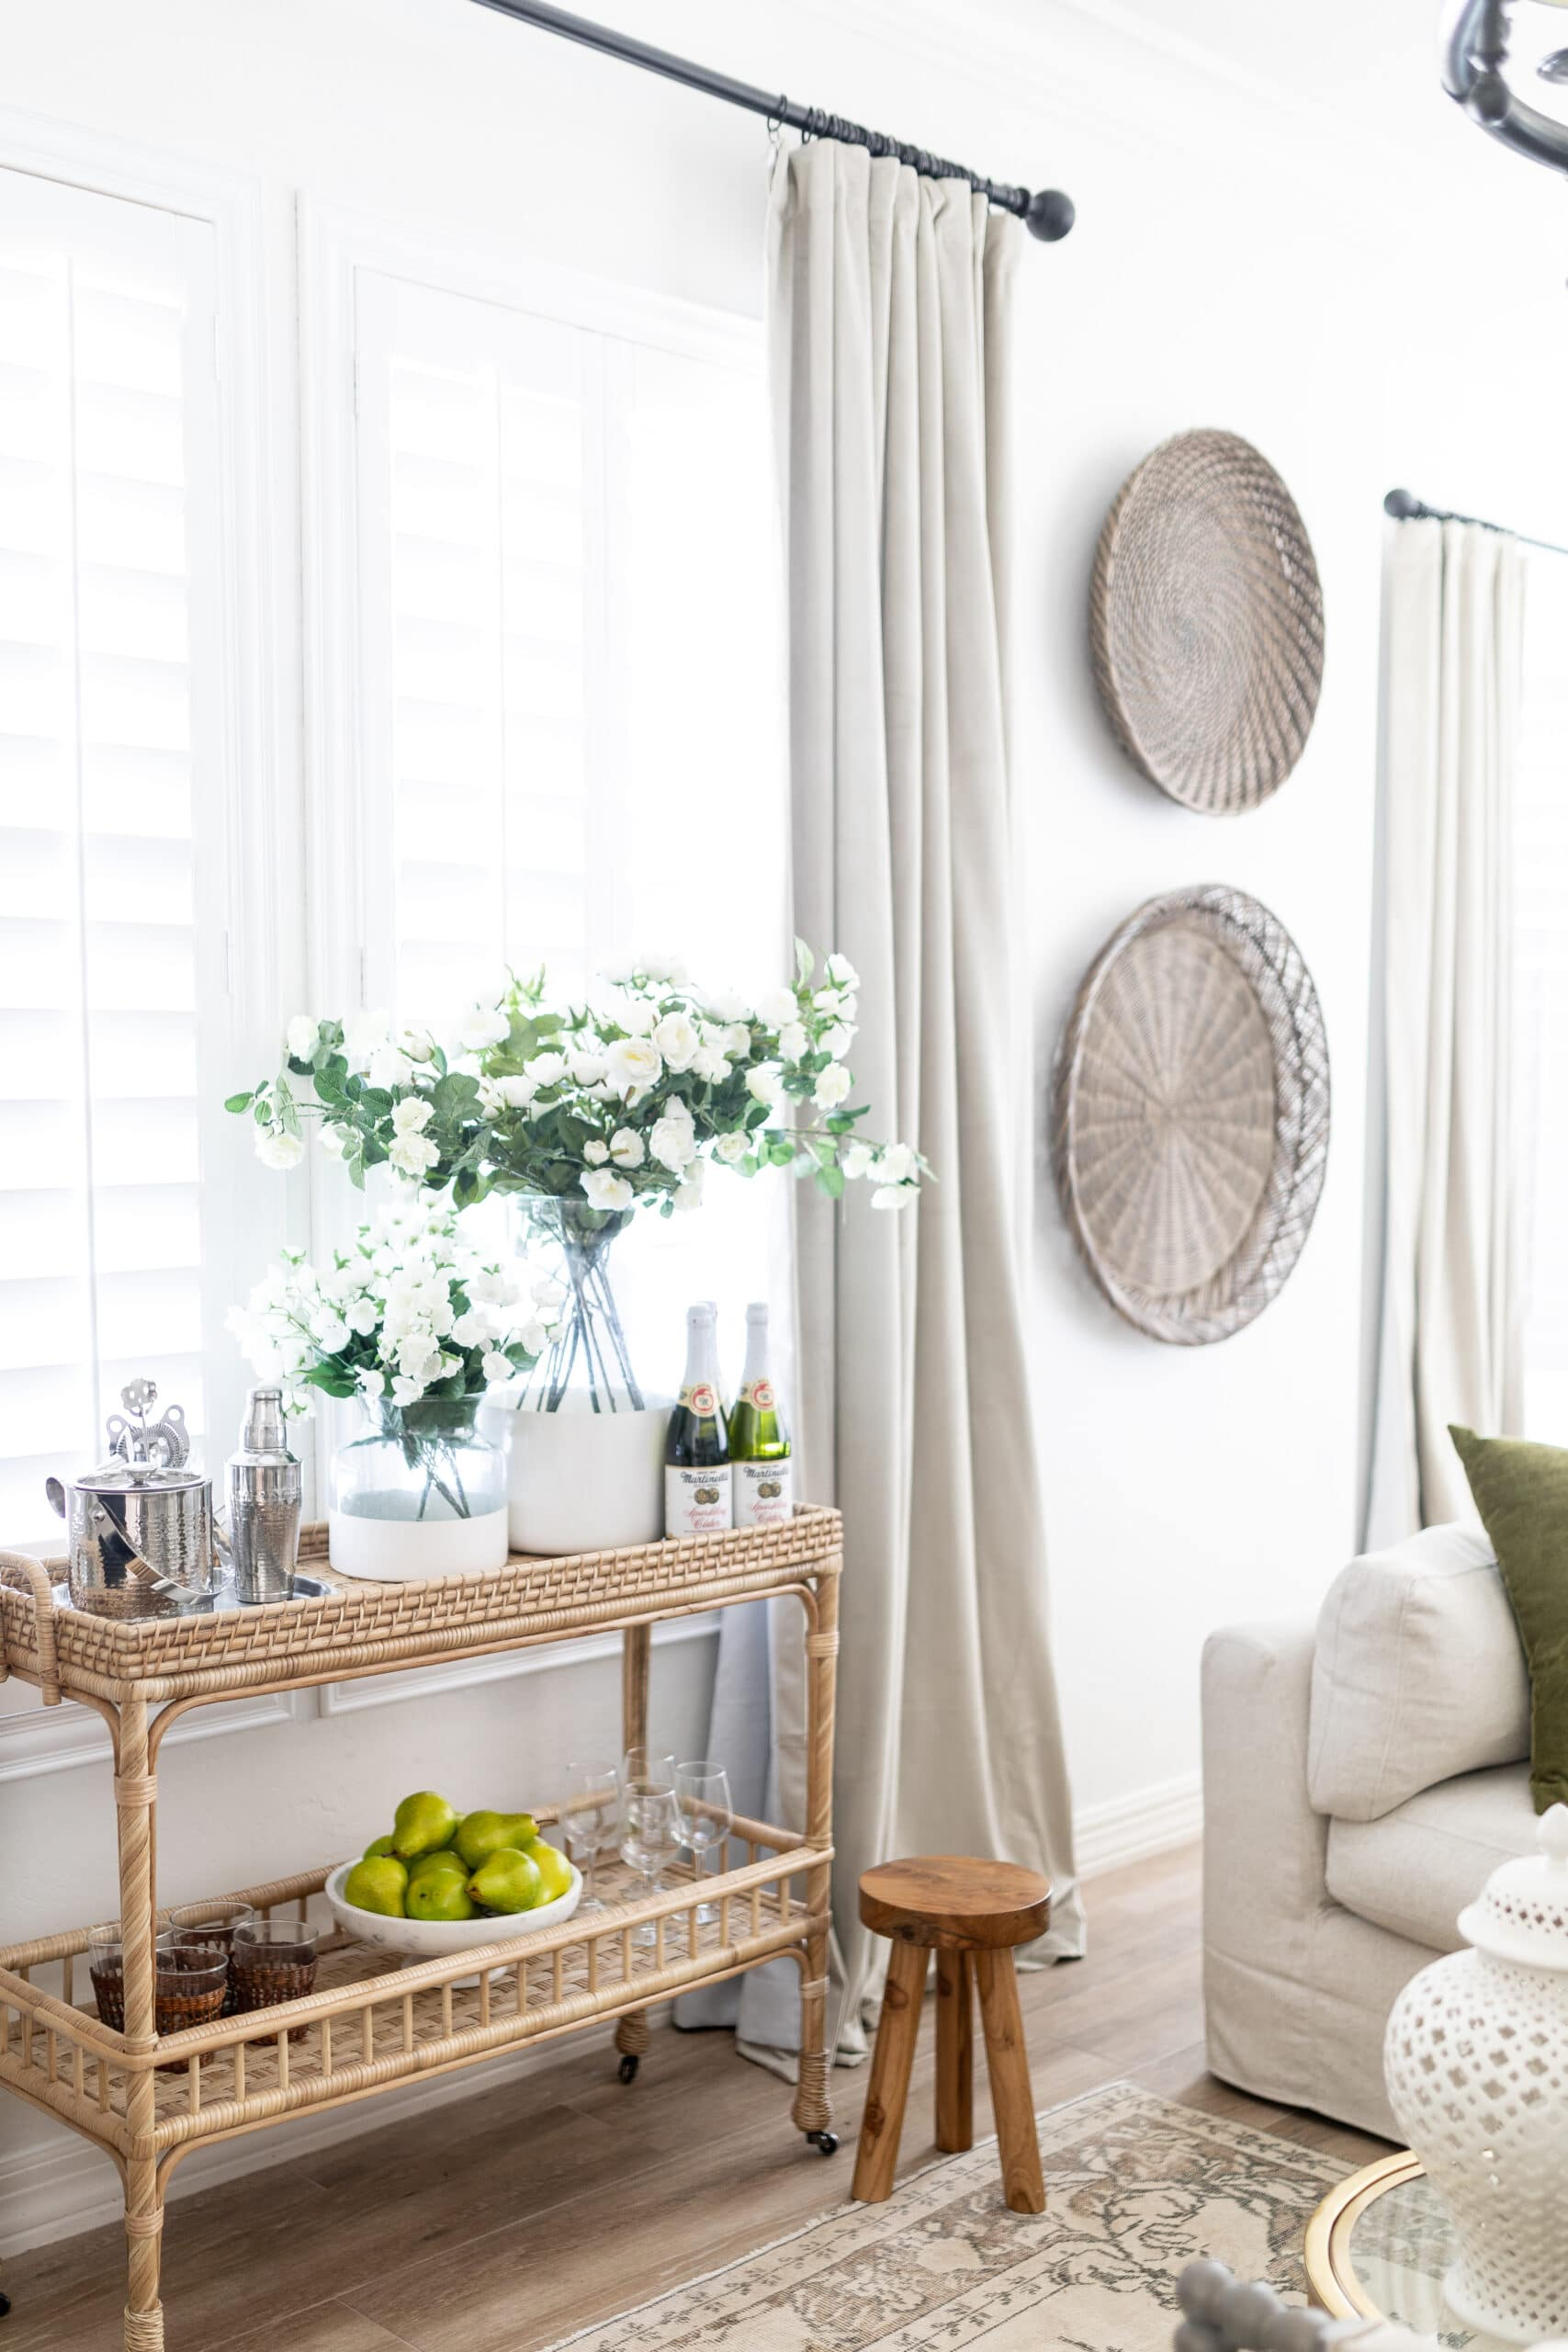 3 Ways to Use the Serena and Lily's South Seas Console and Bar Cart